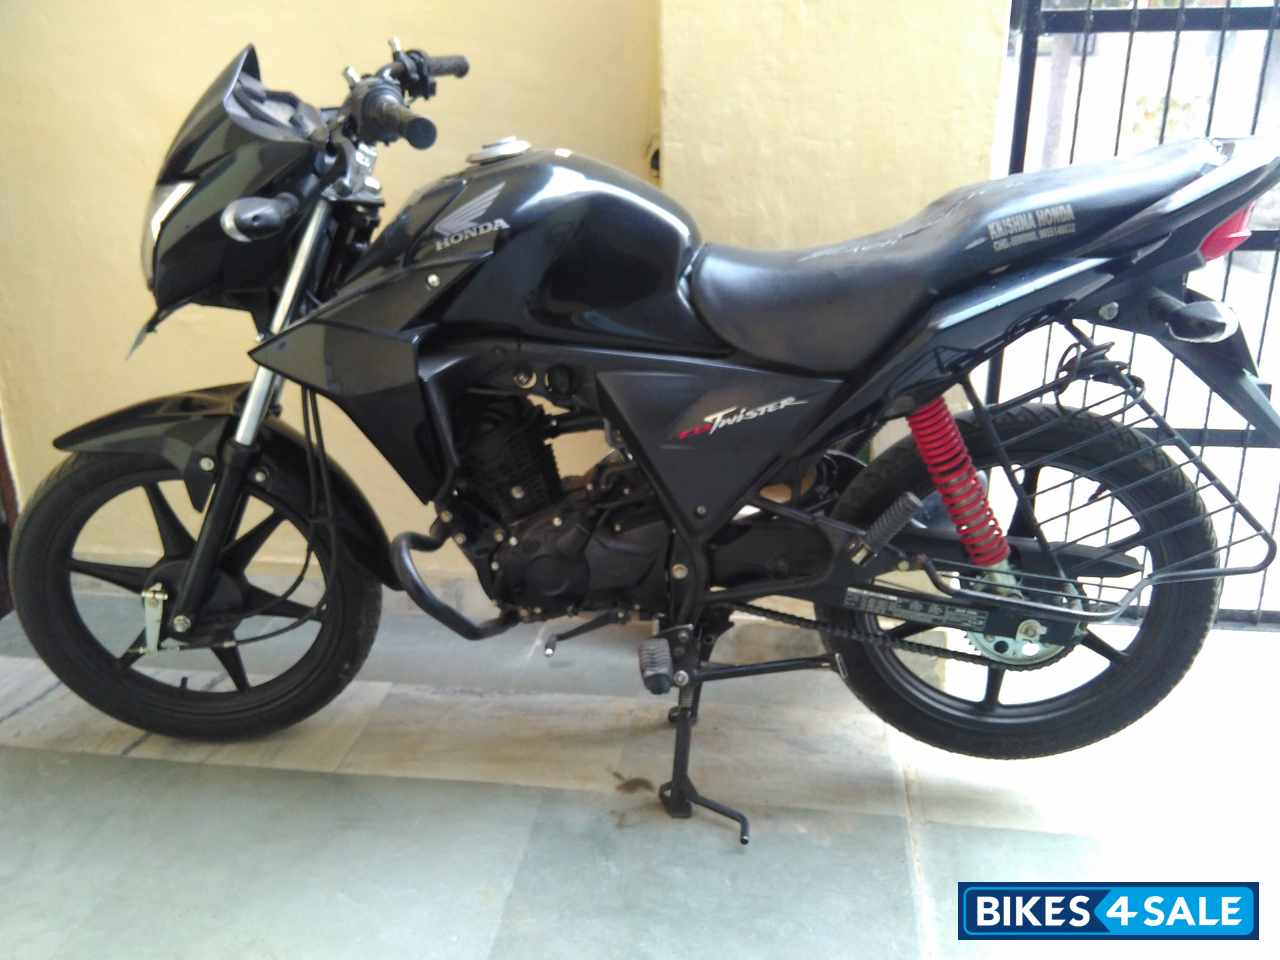 Black Honda Cb Twister For Sale In Mohali Great Condition